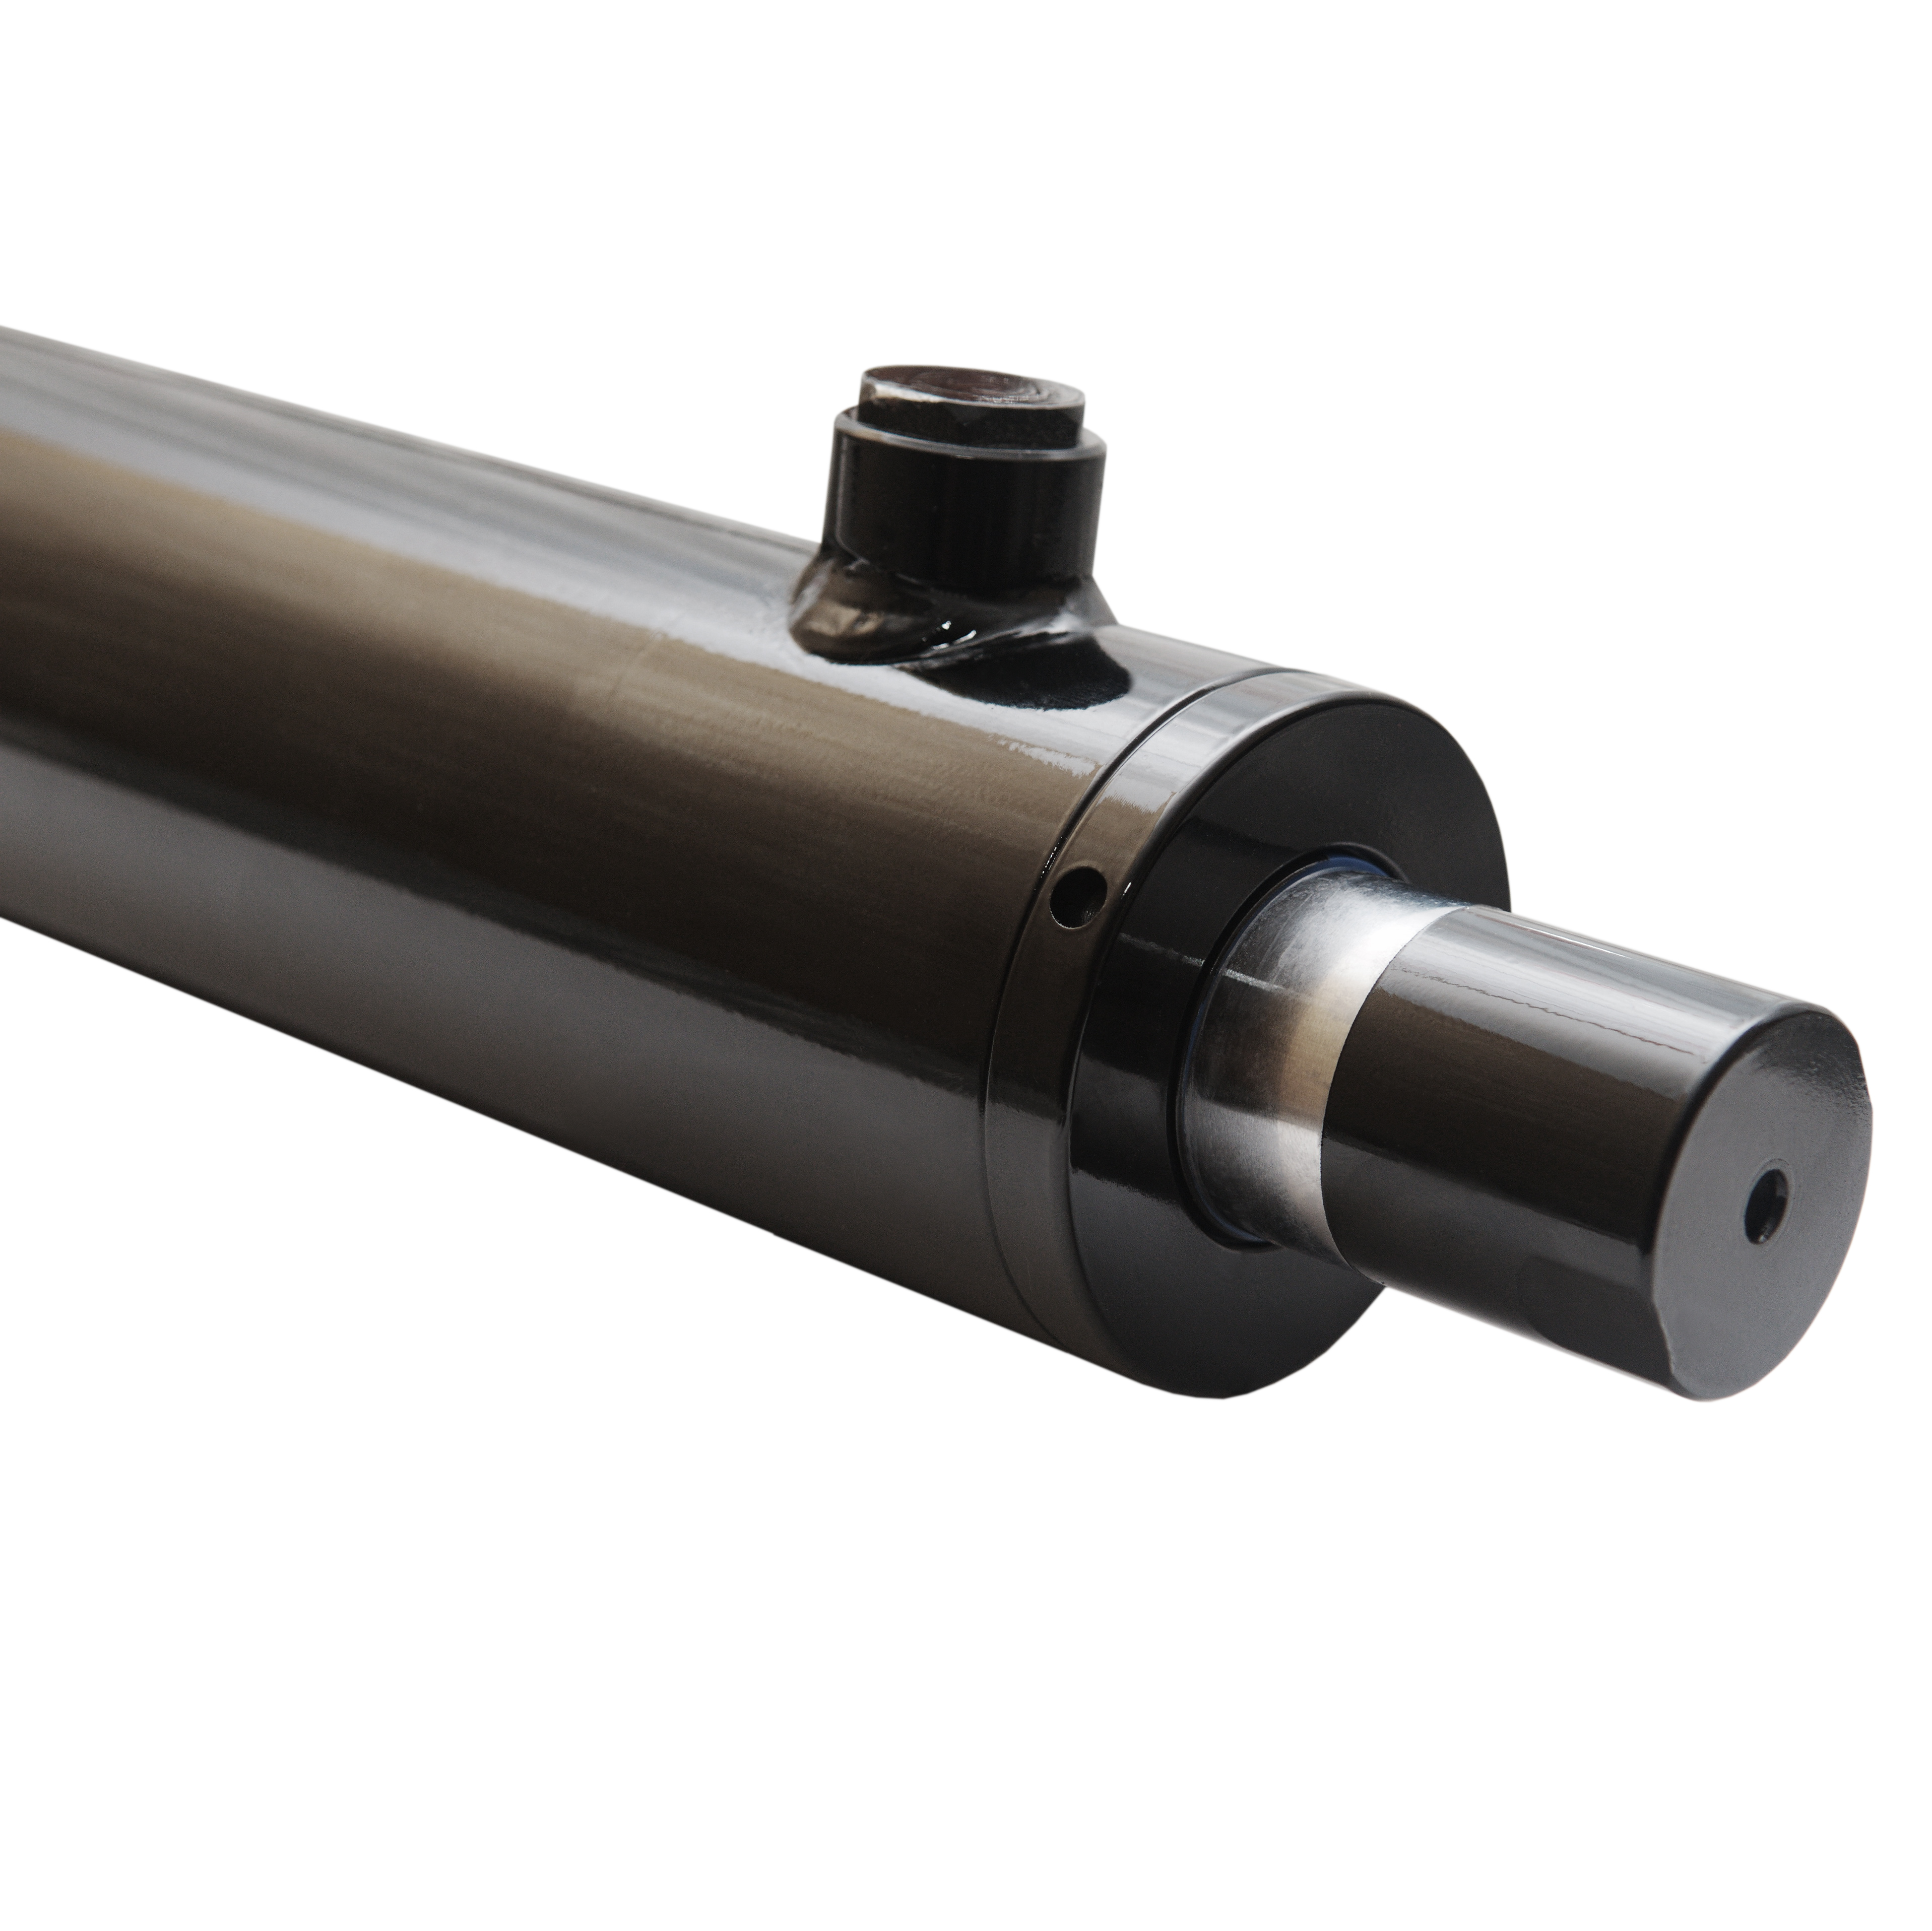 2.5 bore x 23 stroke hydraulic cylinder, welded universal double acting cylinder | Magister Hydraulics